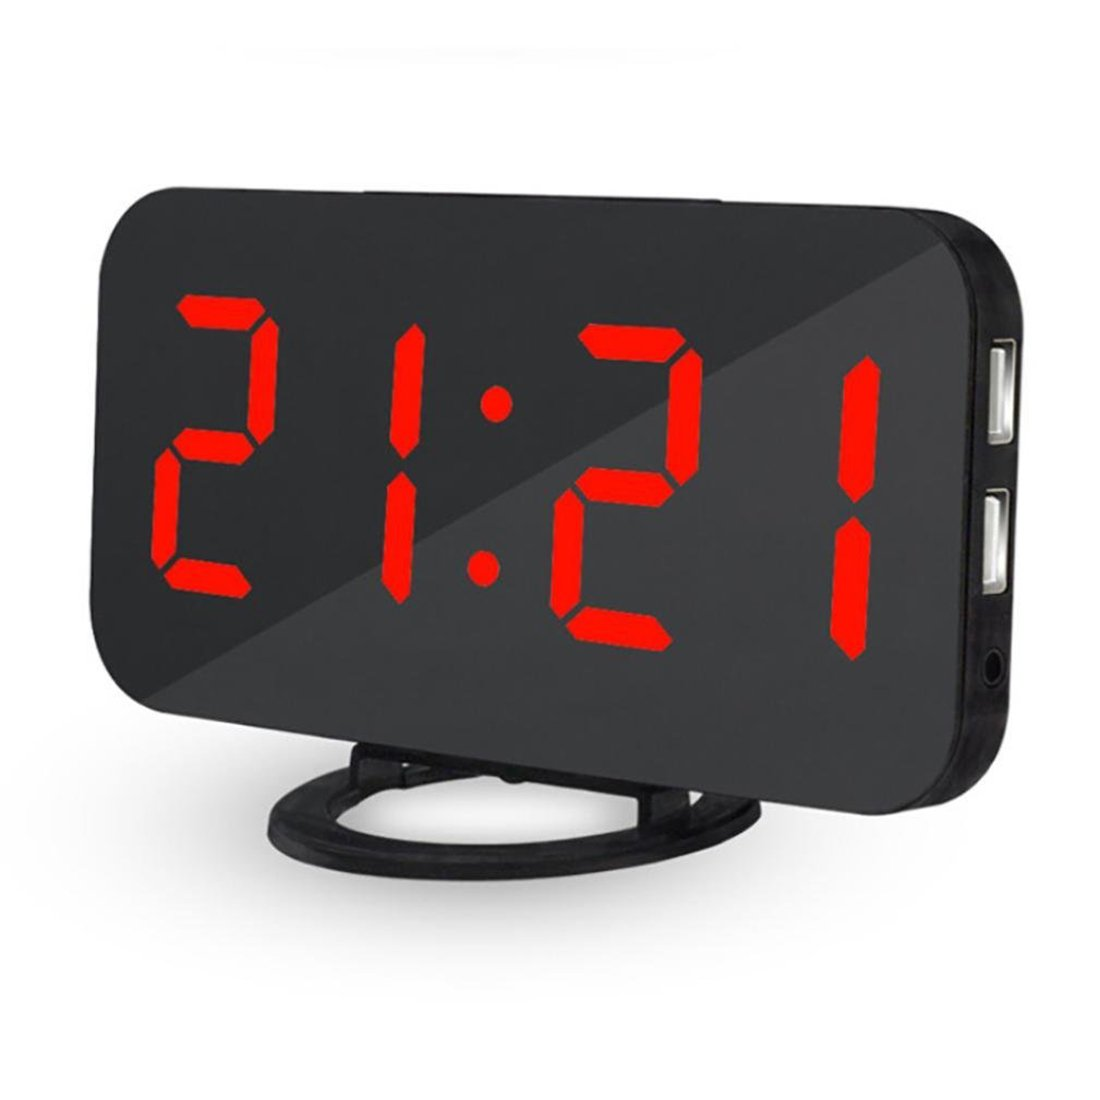 CIGERA Digital Alarm Clock with Auto/Manual Dimmer, Dual USB Port for Charging,Extra Large LED Numerber,Outlet Powered and Battery Backup,Black+Green